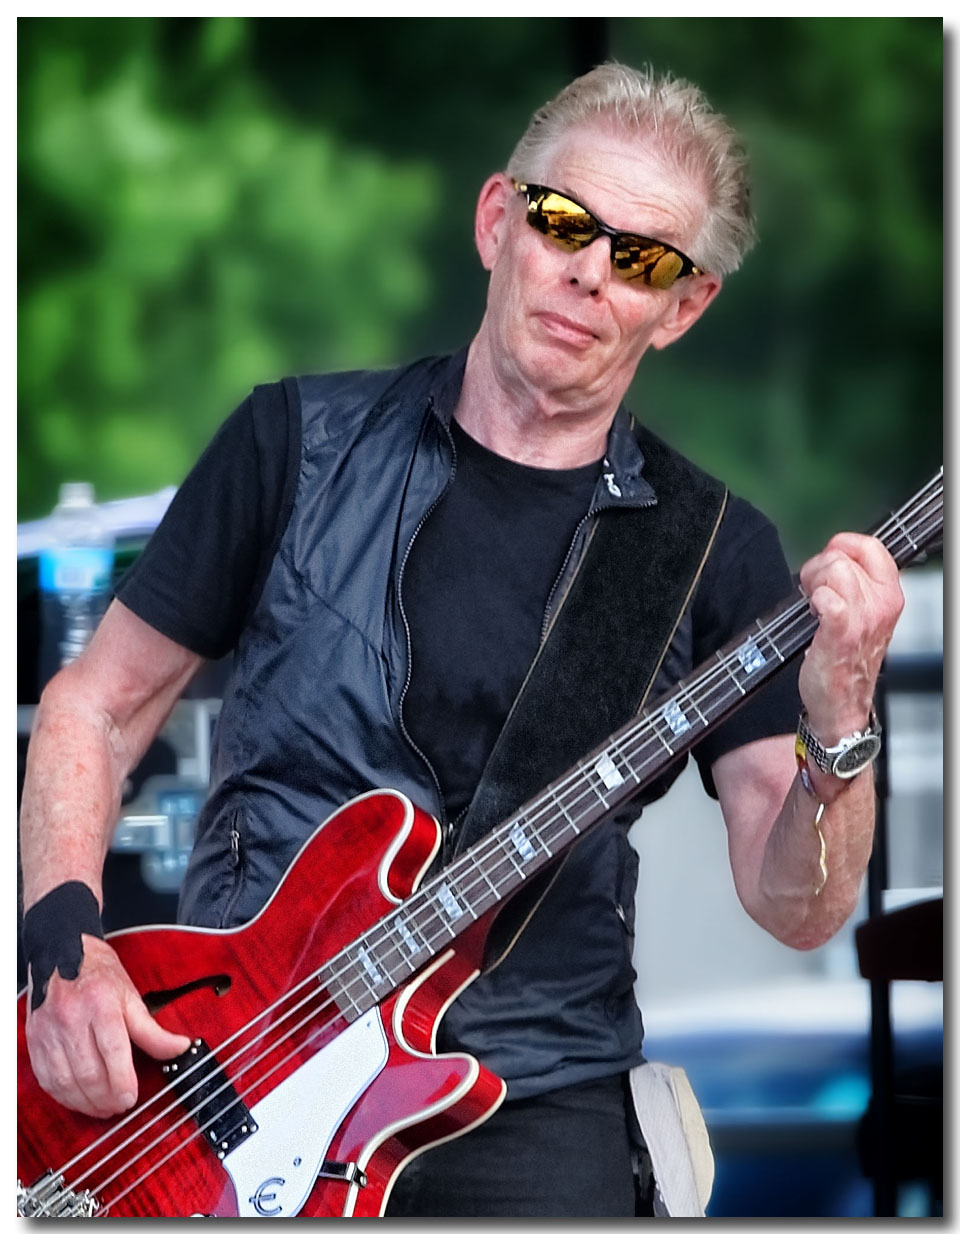 JACK CASADY, HOT TUNA